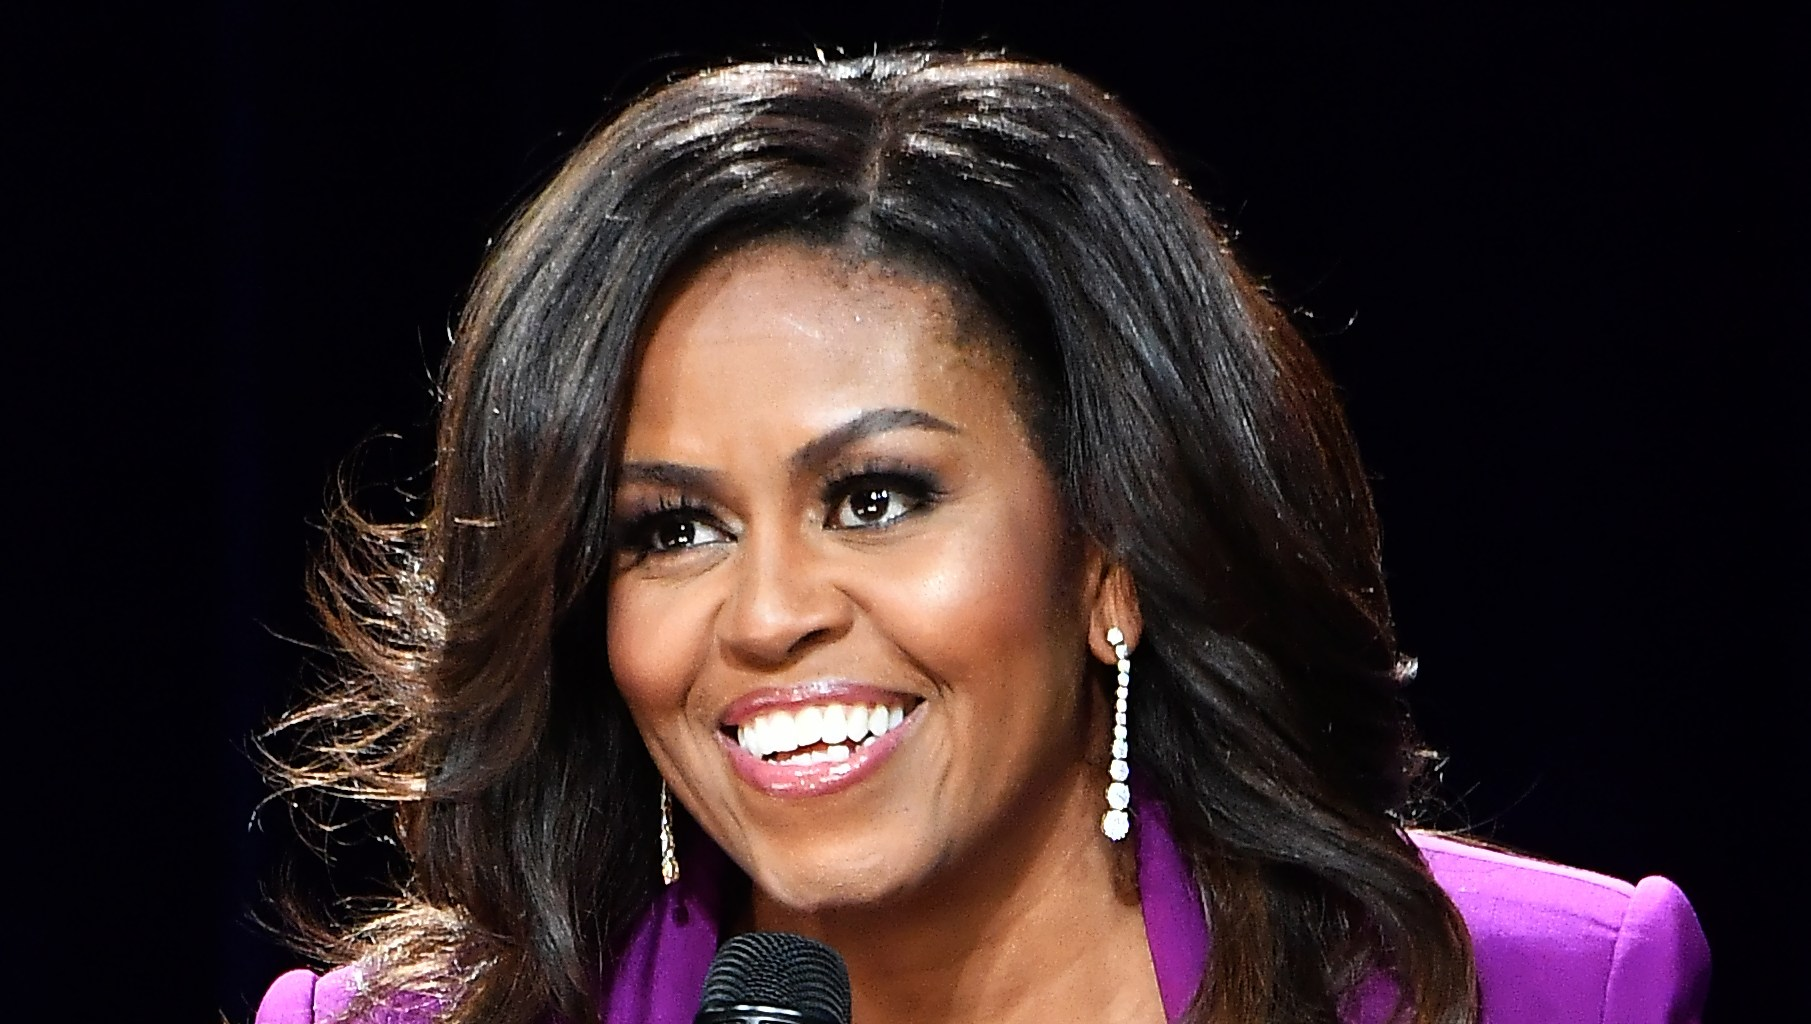 Michelle-Obama-makeup-Atlanta-book-tour